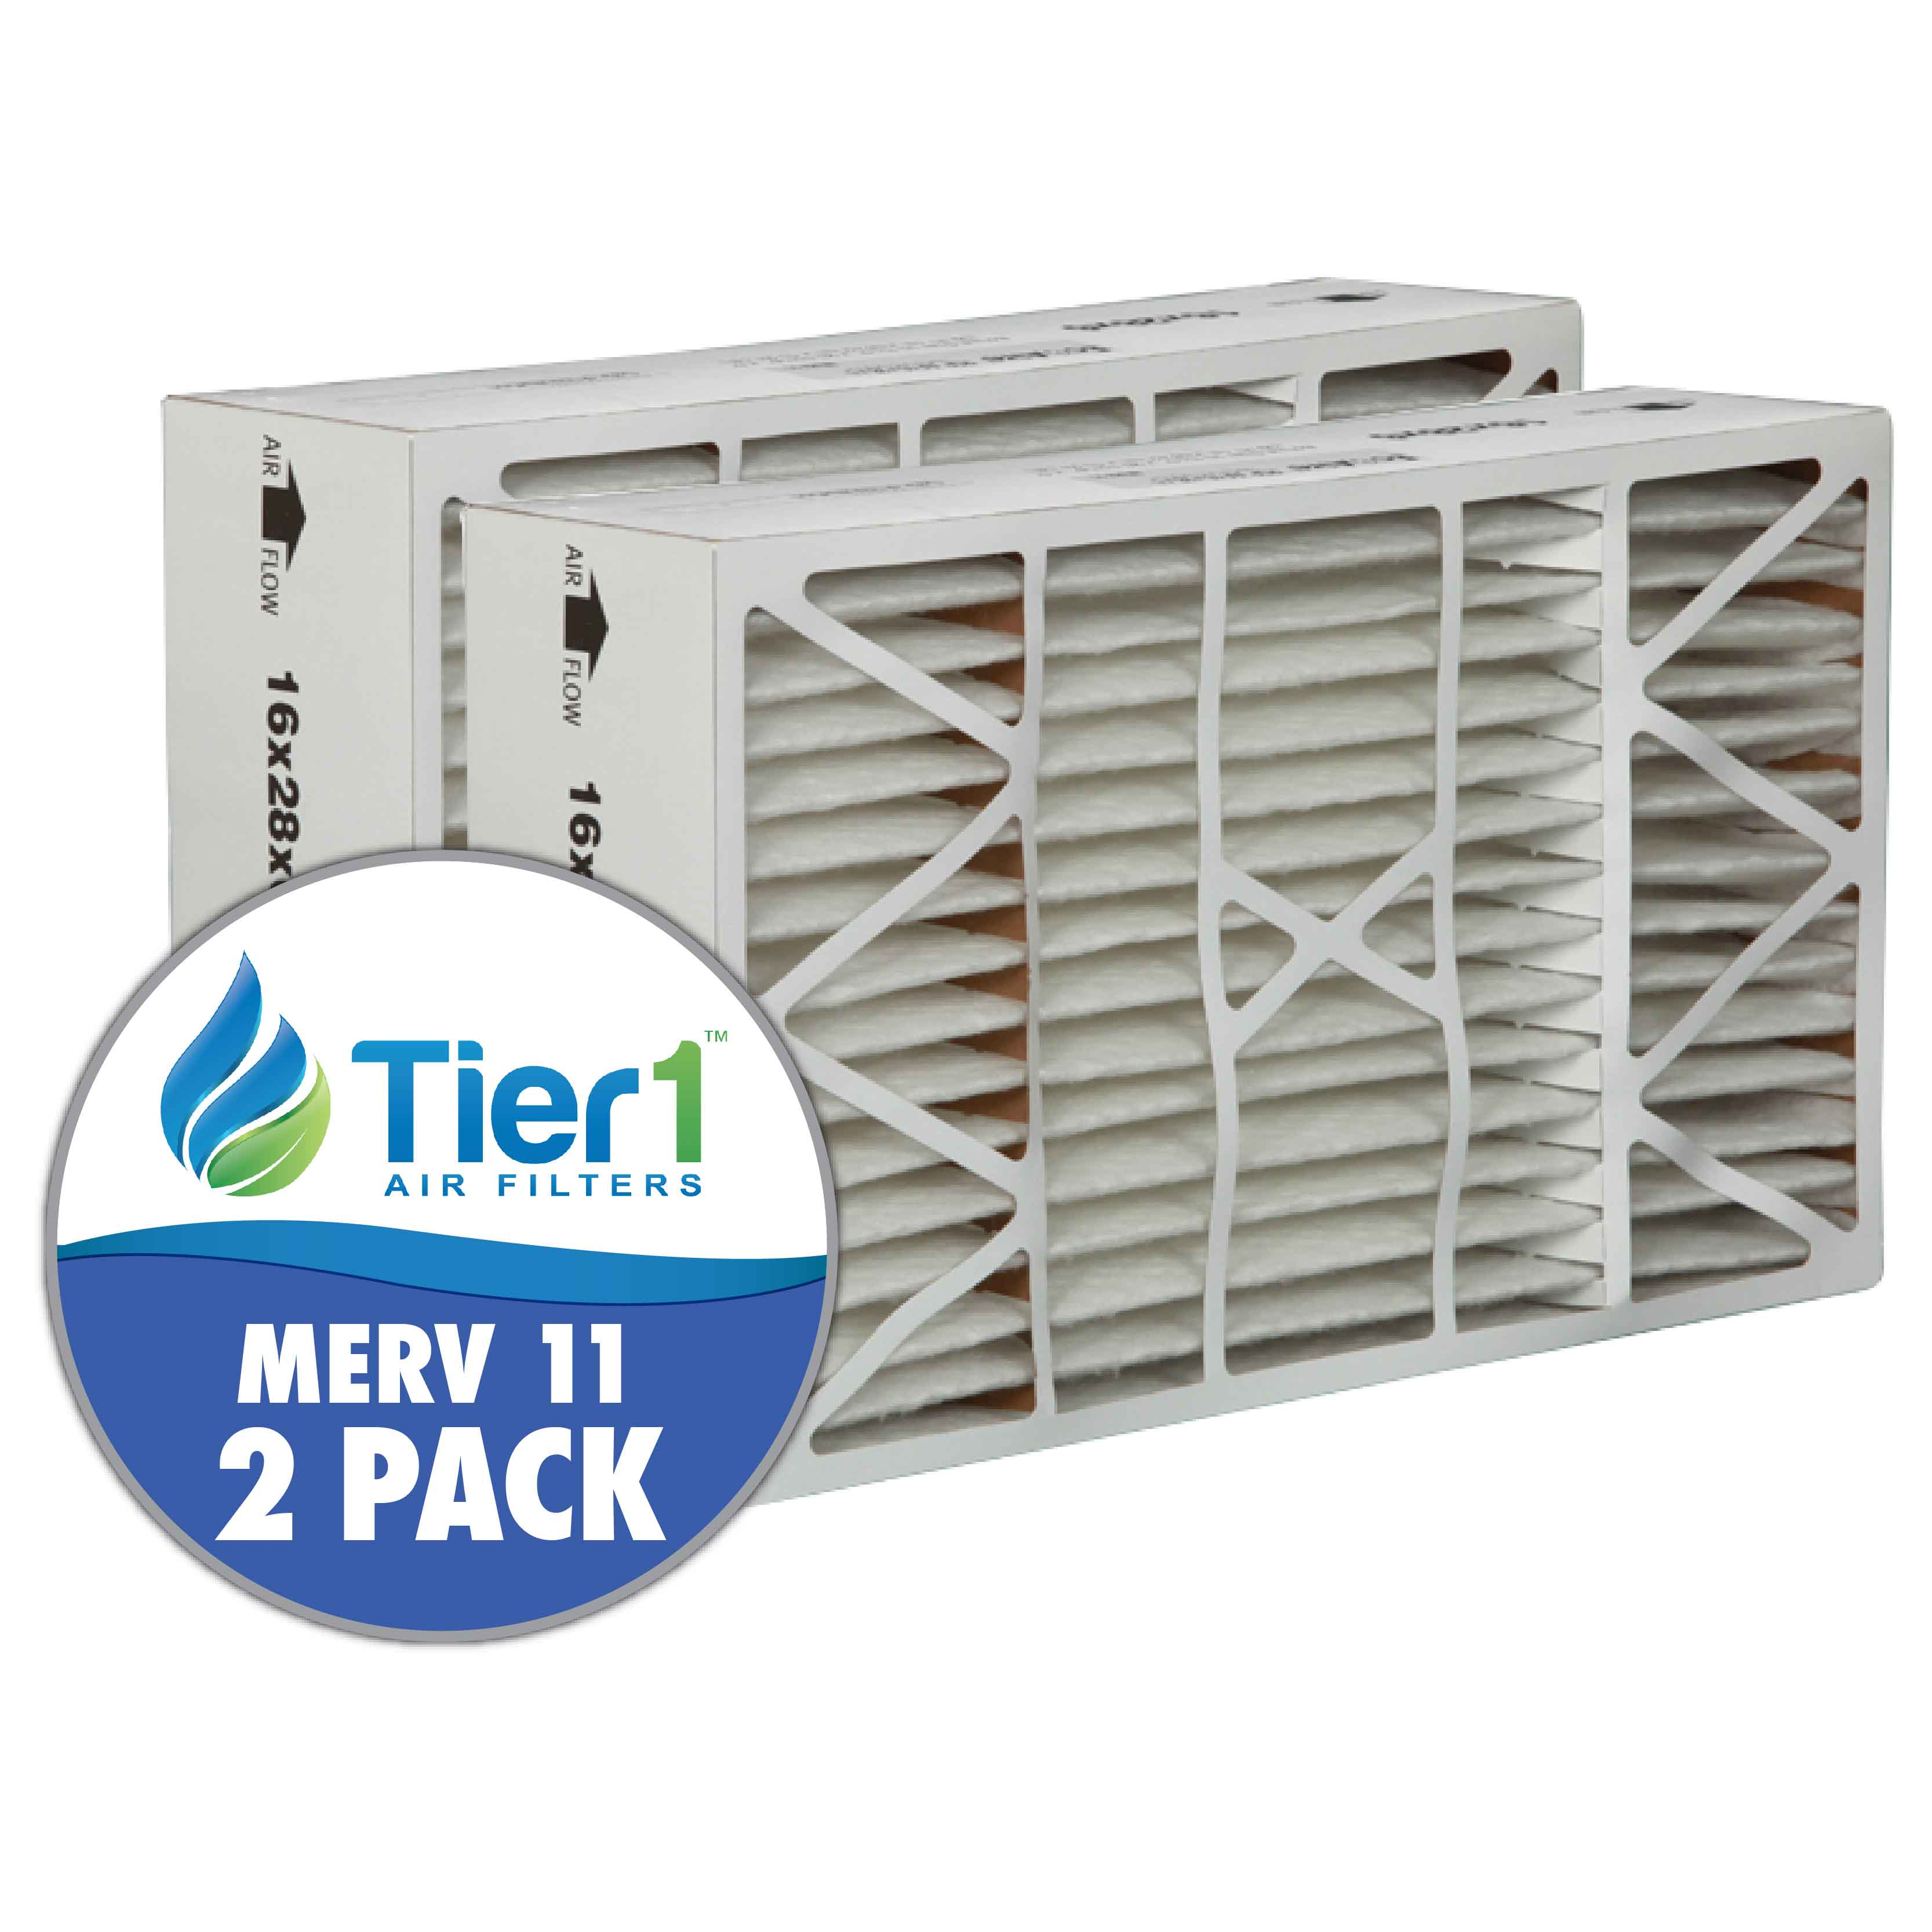 Tier1 brand replacement for Aprilaire #401 - 16 x 28 x 6 - MERV 11 (2-Pack) TIER1-DPFS16X28X6M11